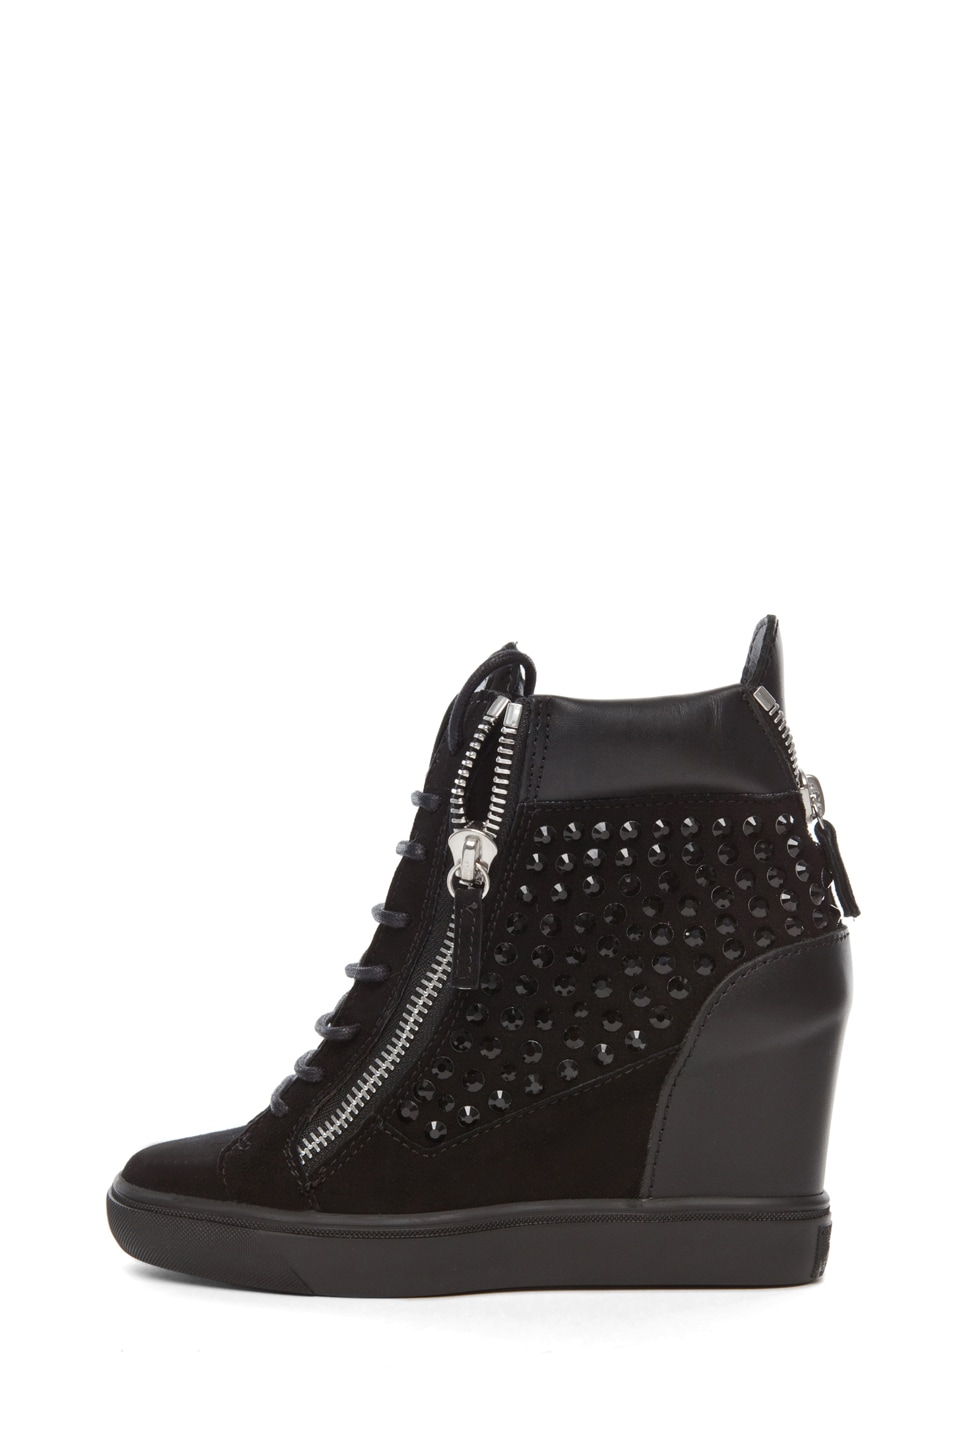 3a0067828d80 Image 1 of Giuseppe Zanotti Suede   Leather Embellished Wedge Sneakers in  Black